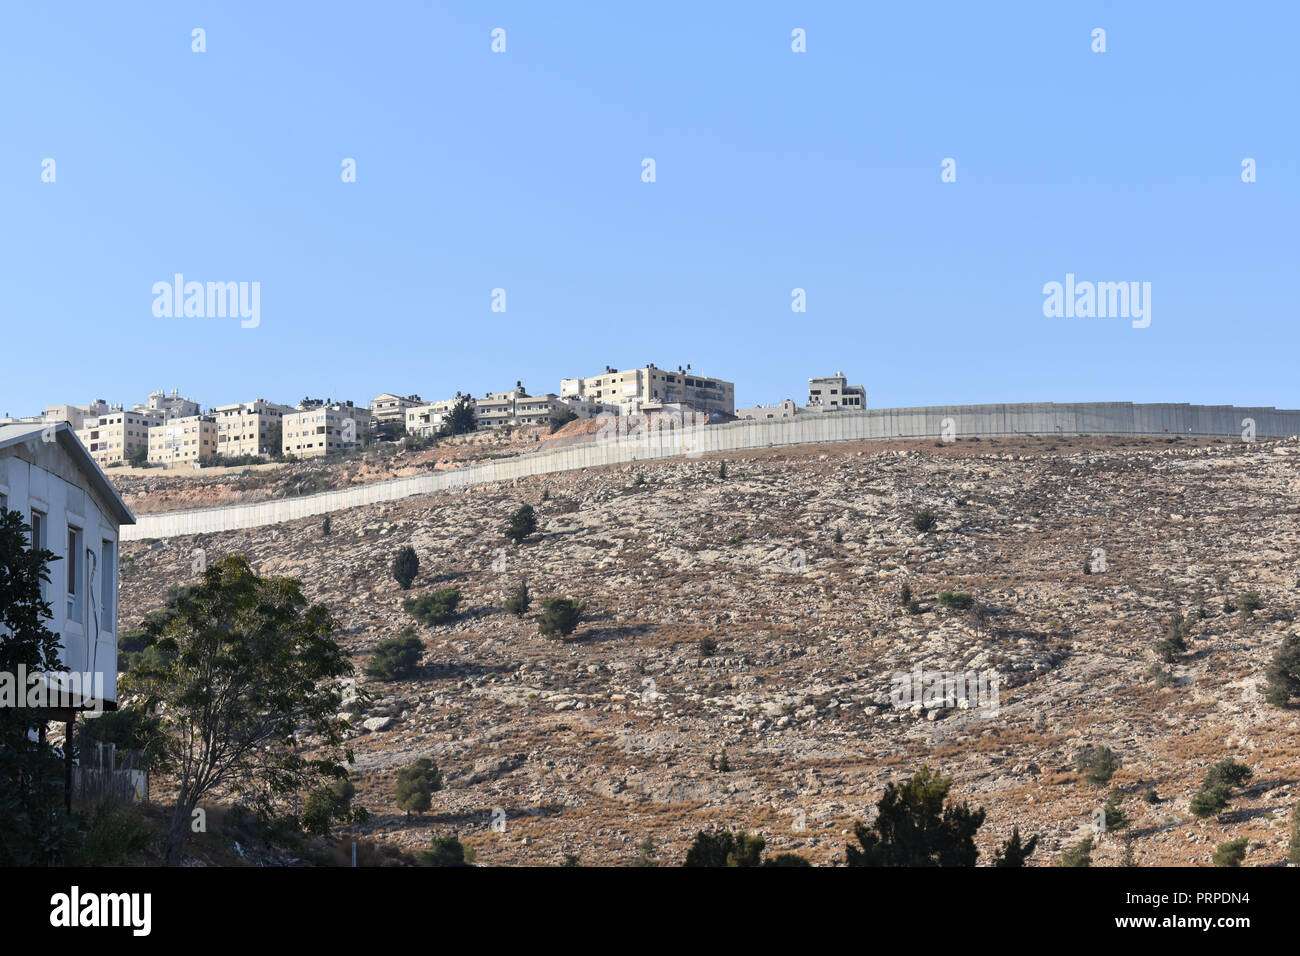 Ramallah as seen from behind security barrier - Stock Image